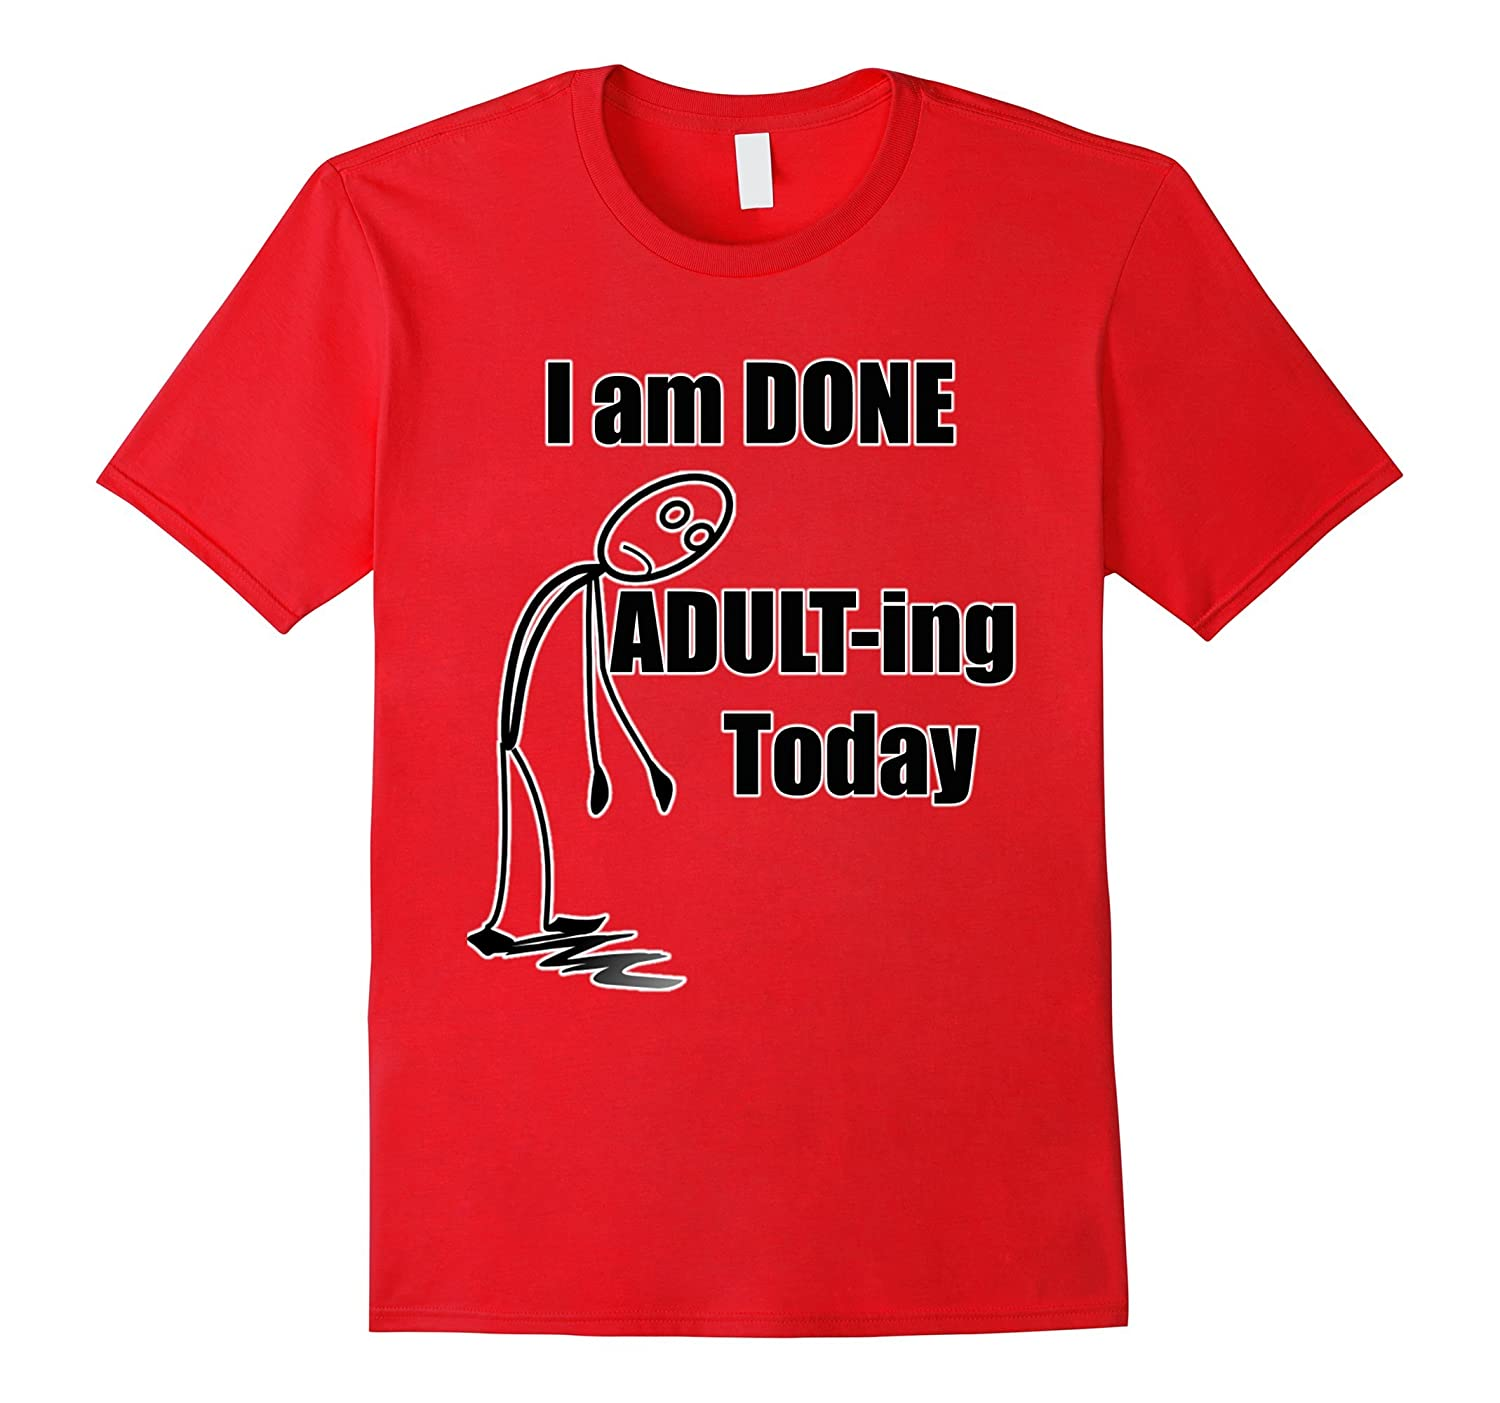 ADULT ing Today Funny T Shirt Black-Teeae